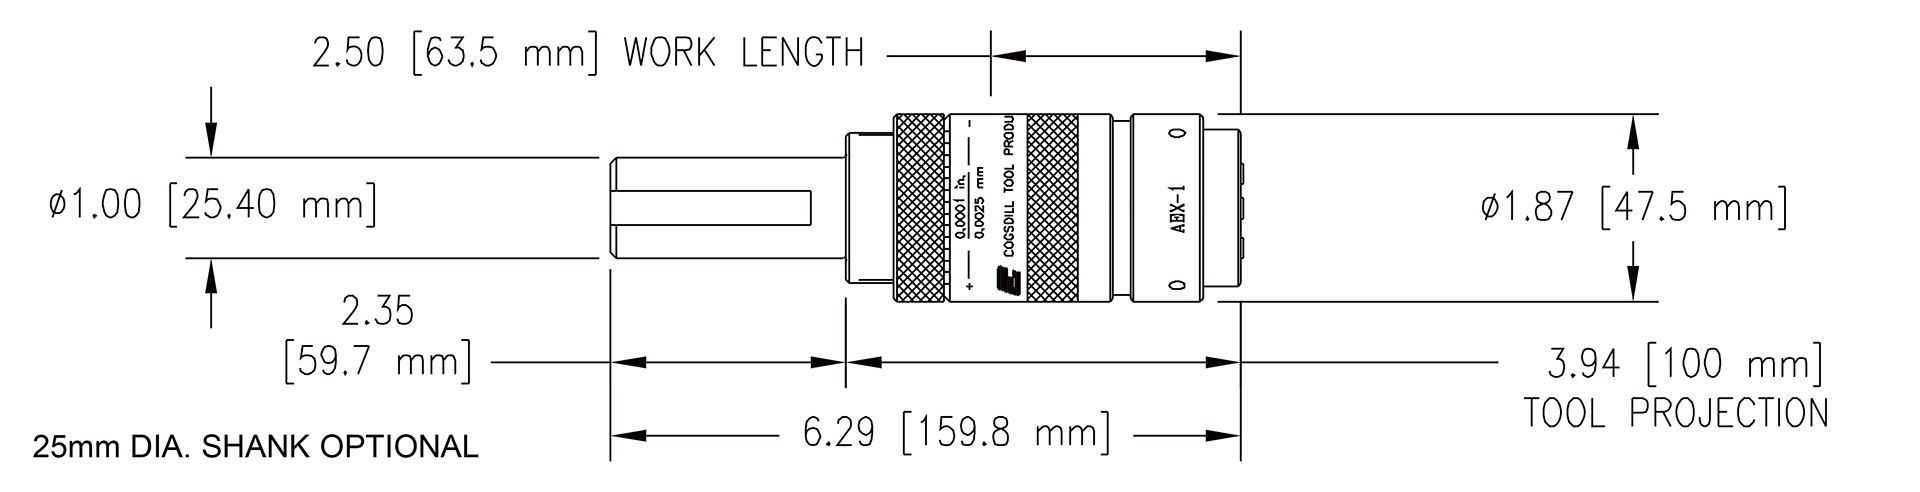 AEX-1 specifications